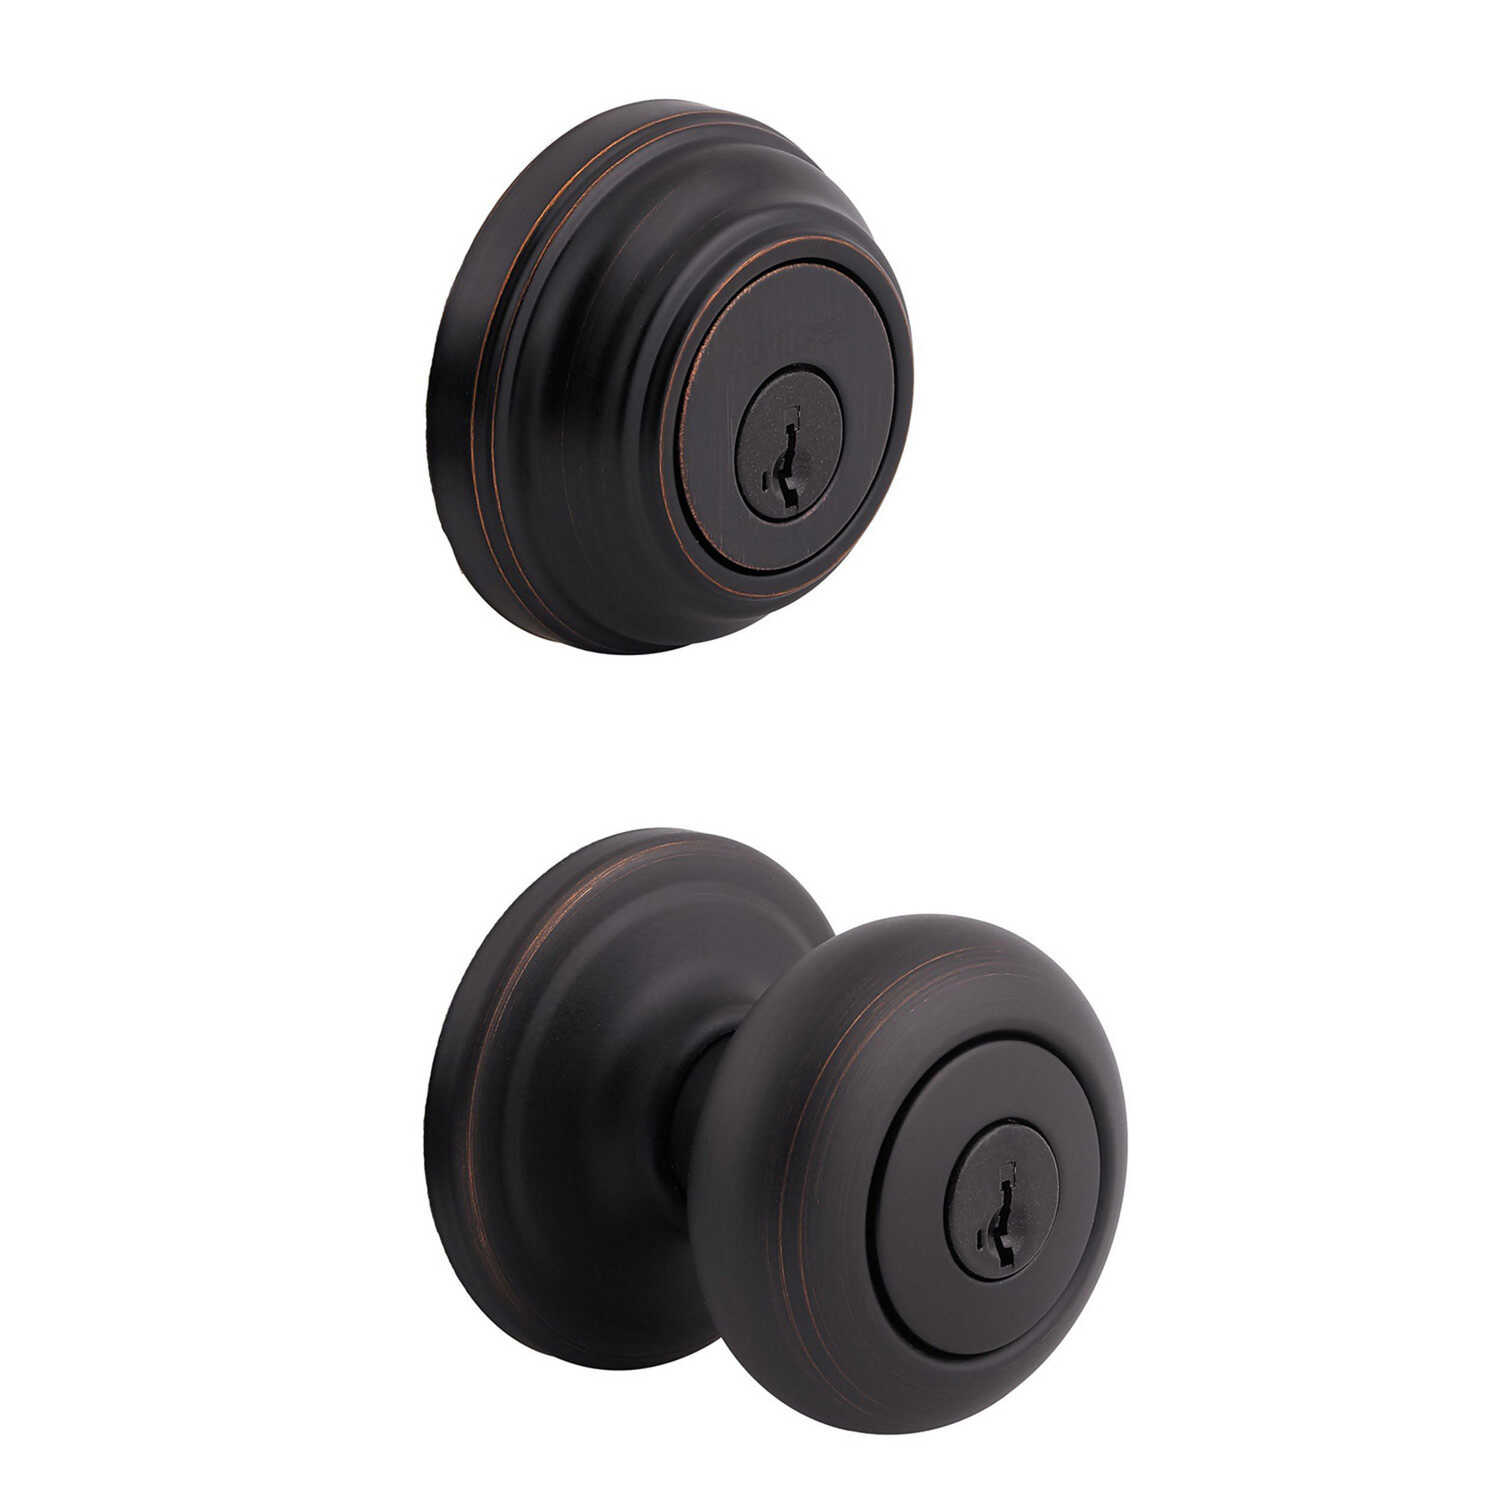 Kwikset  Juno  Venetian Bronze  Knob and Single Cylinder Deadbolt  ANSI/BHMA Grade 2  KW1  1-3/4 in.